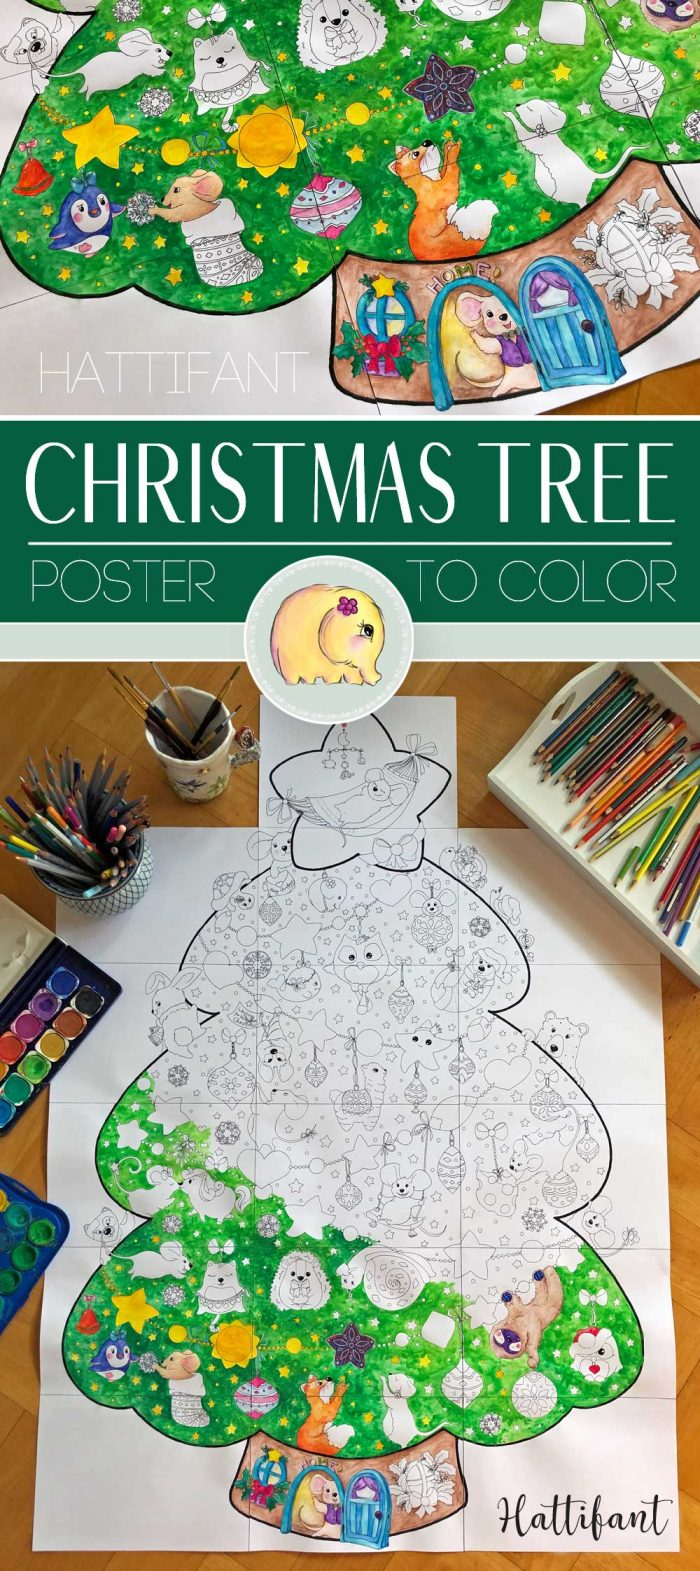 Hattifant's Giant Poster Christmas Tree Animal Cuties to Color Pin